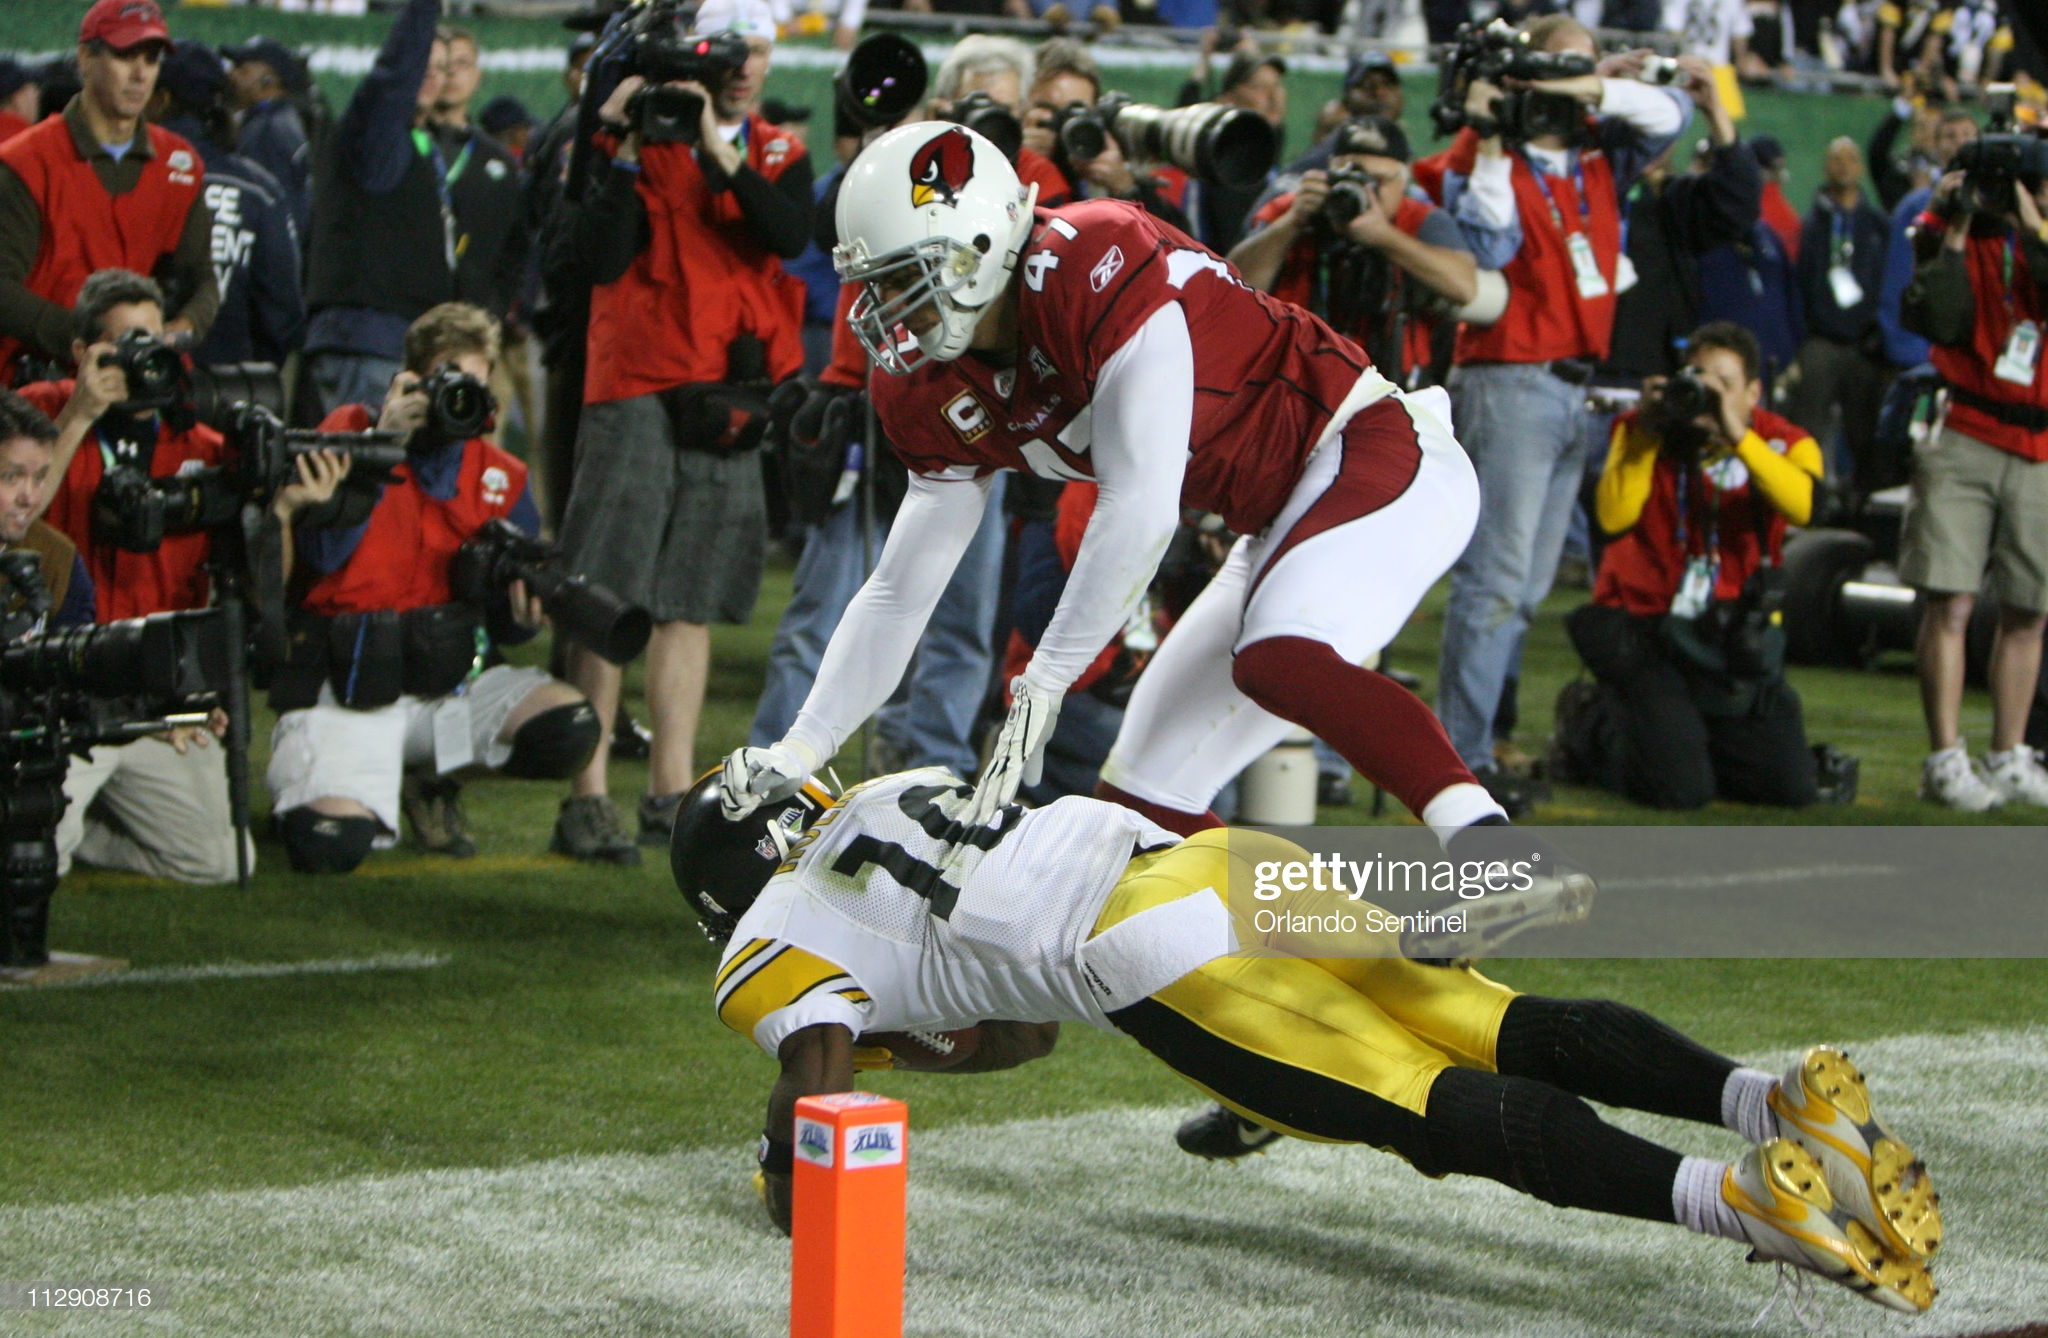 Pittsburgh's Santonio Holmes catches the game winning touchdown as the Pittsburgh Steelers beat the Arizona Cardinals 27-23 in Super Bowl XLIII at Raymond James Stadium in Tampa, Florida, Sunday, February 1, 2009.  (Photo by Gary W. Green/Orlando Sentinel/Tribune News Service via Getty Images)